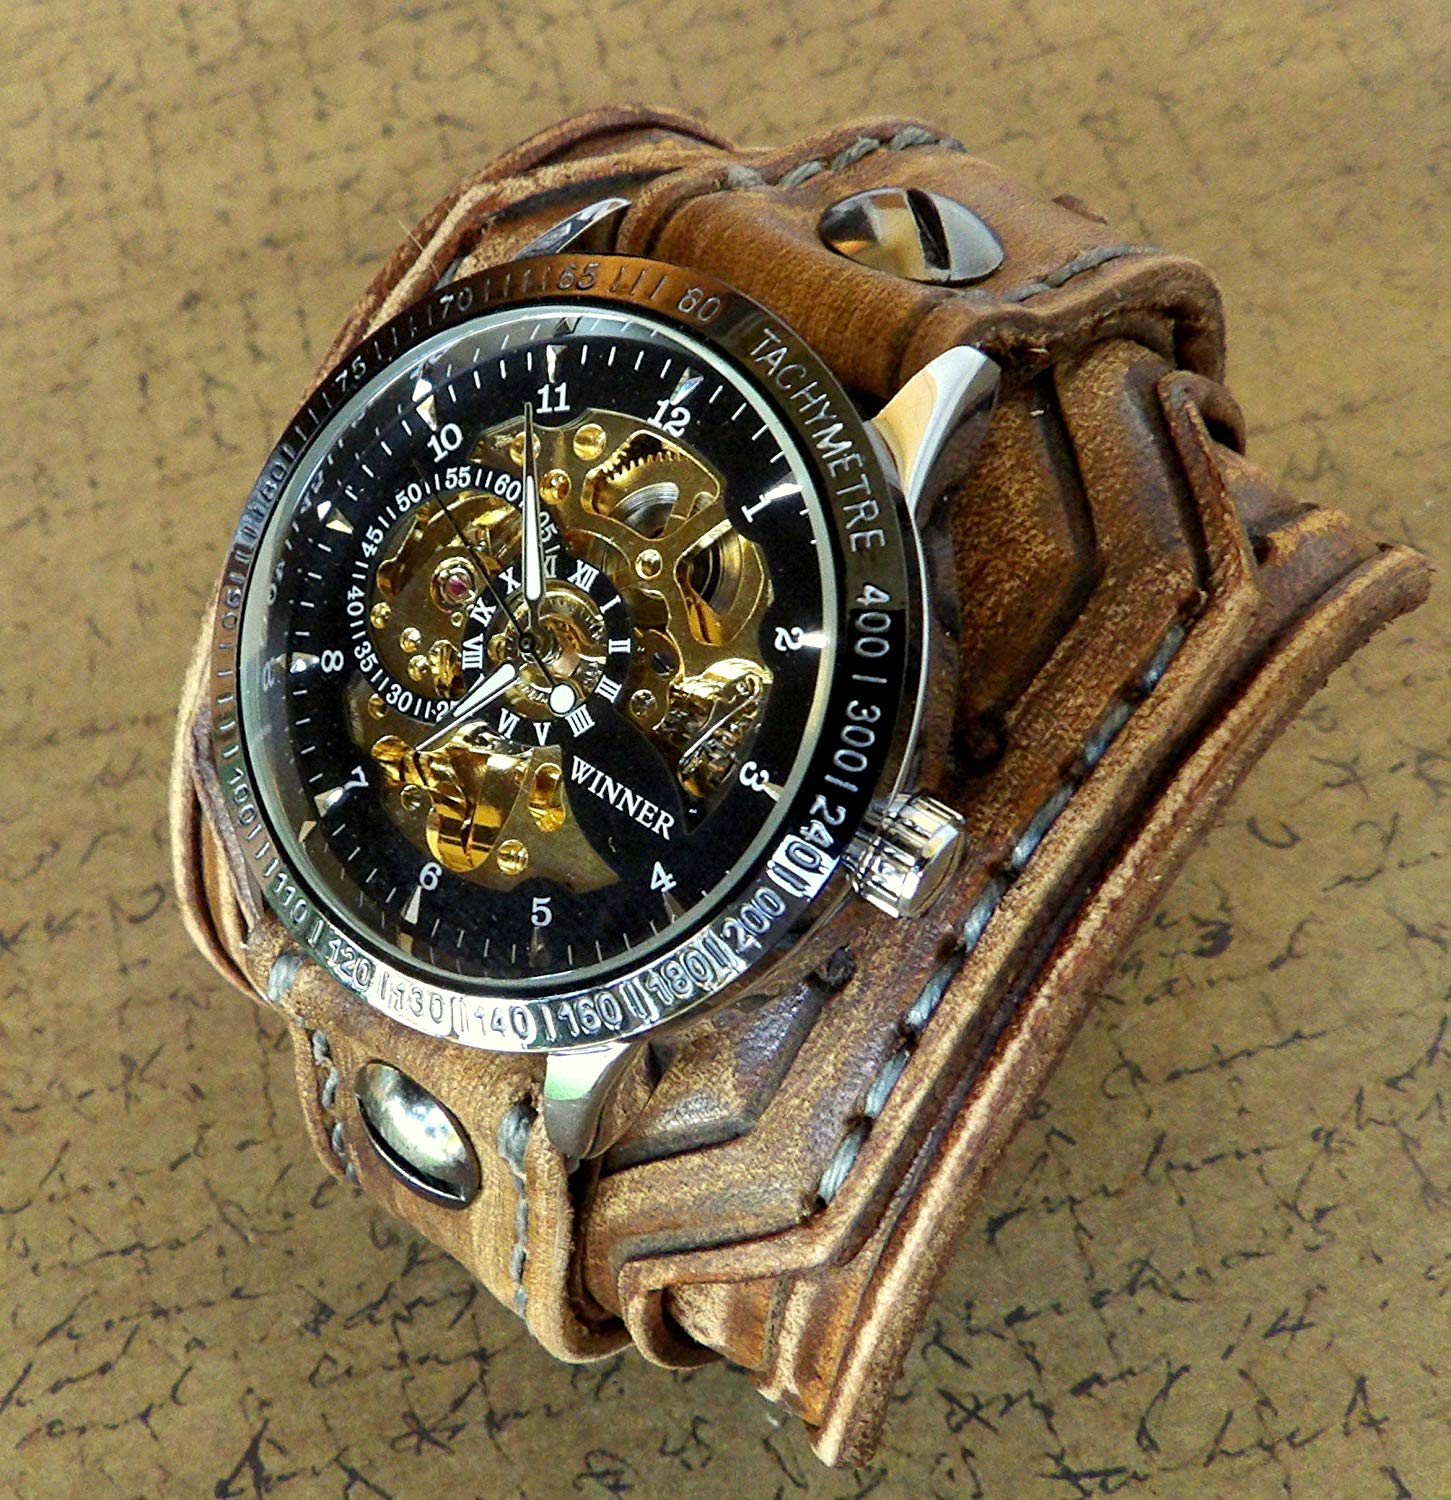 Steampunk Leather Wrist Watch, Rustic Men's watch, Skeleton Leather Cuff, Bracelet Watch, Watch Cuff